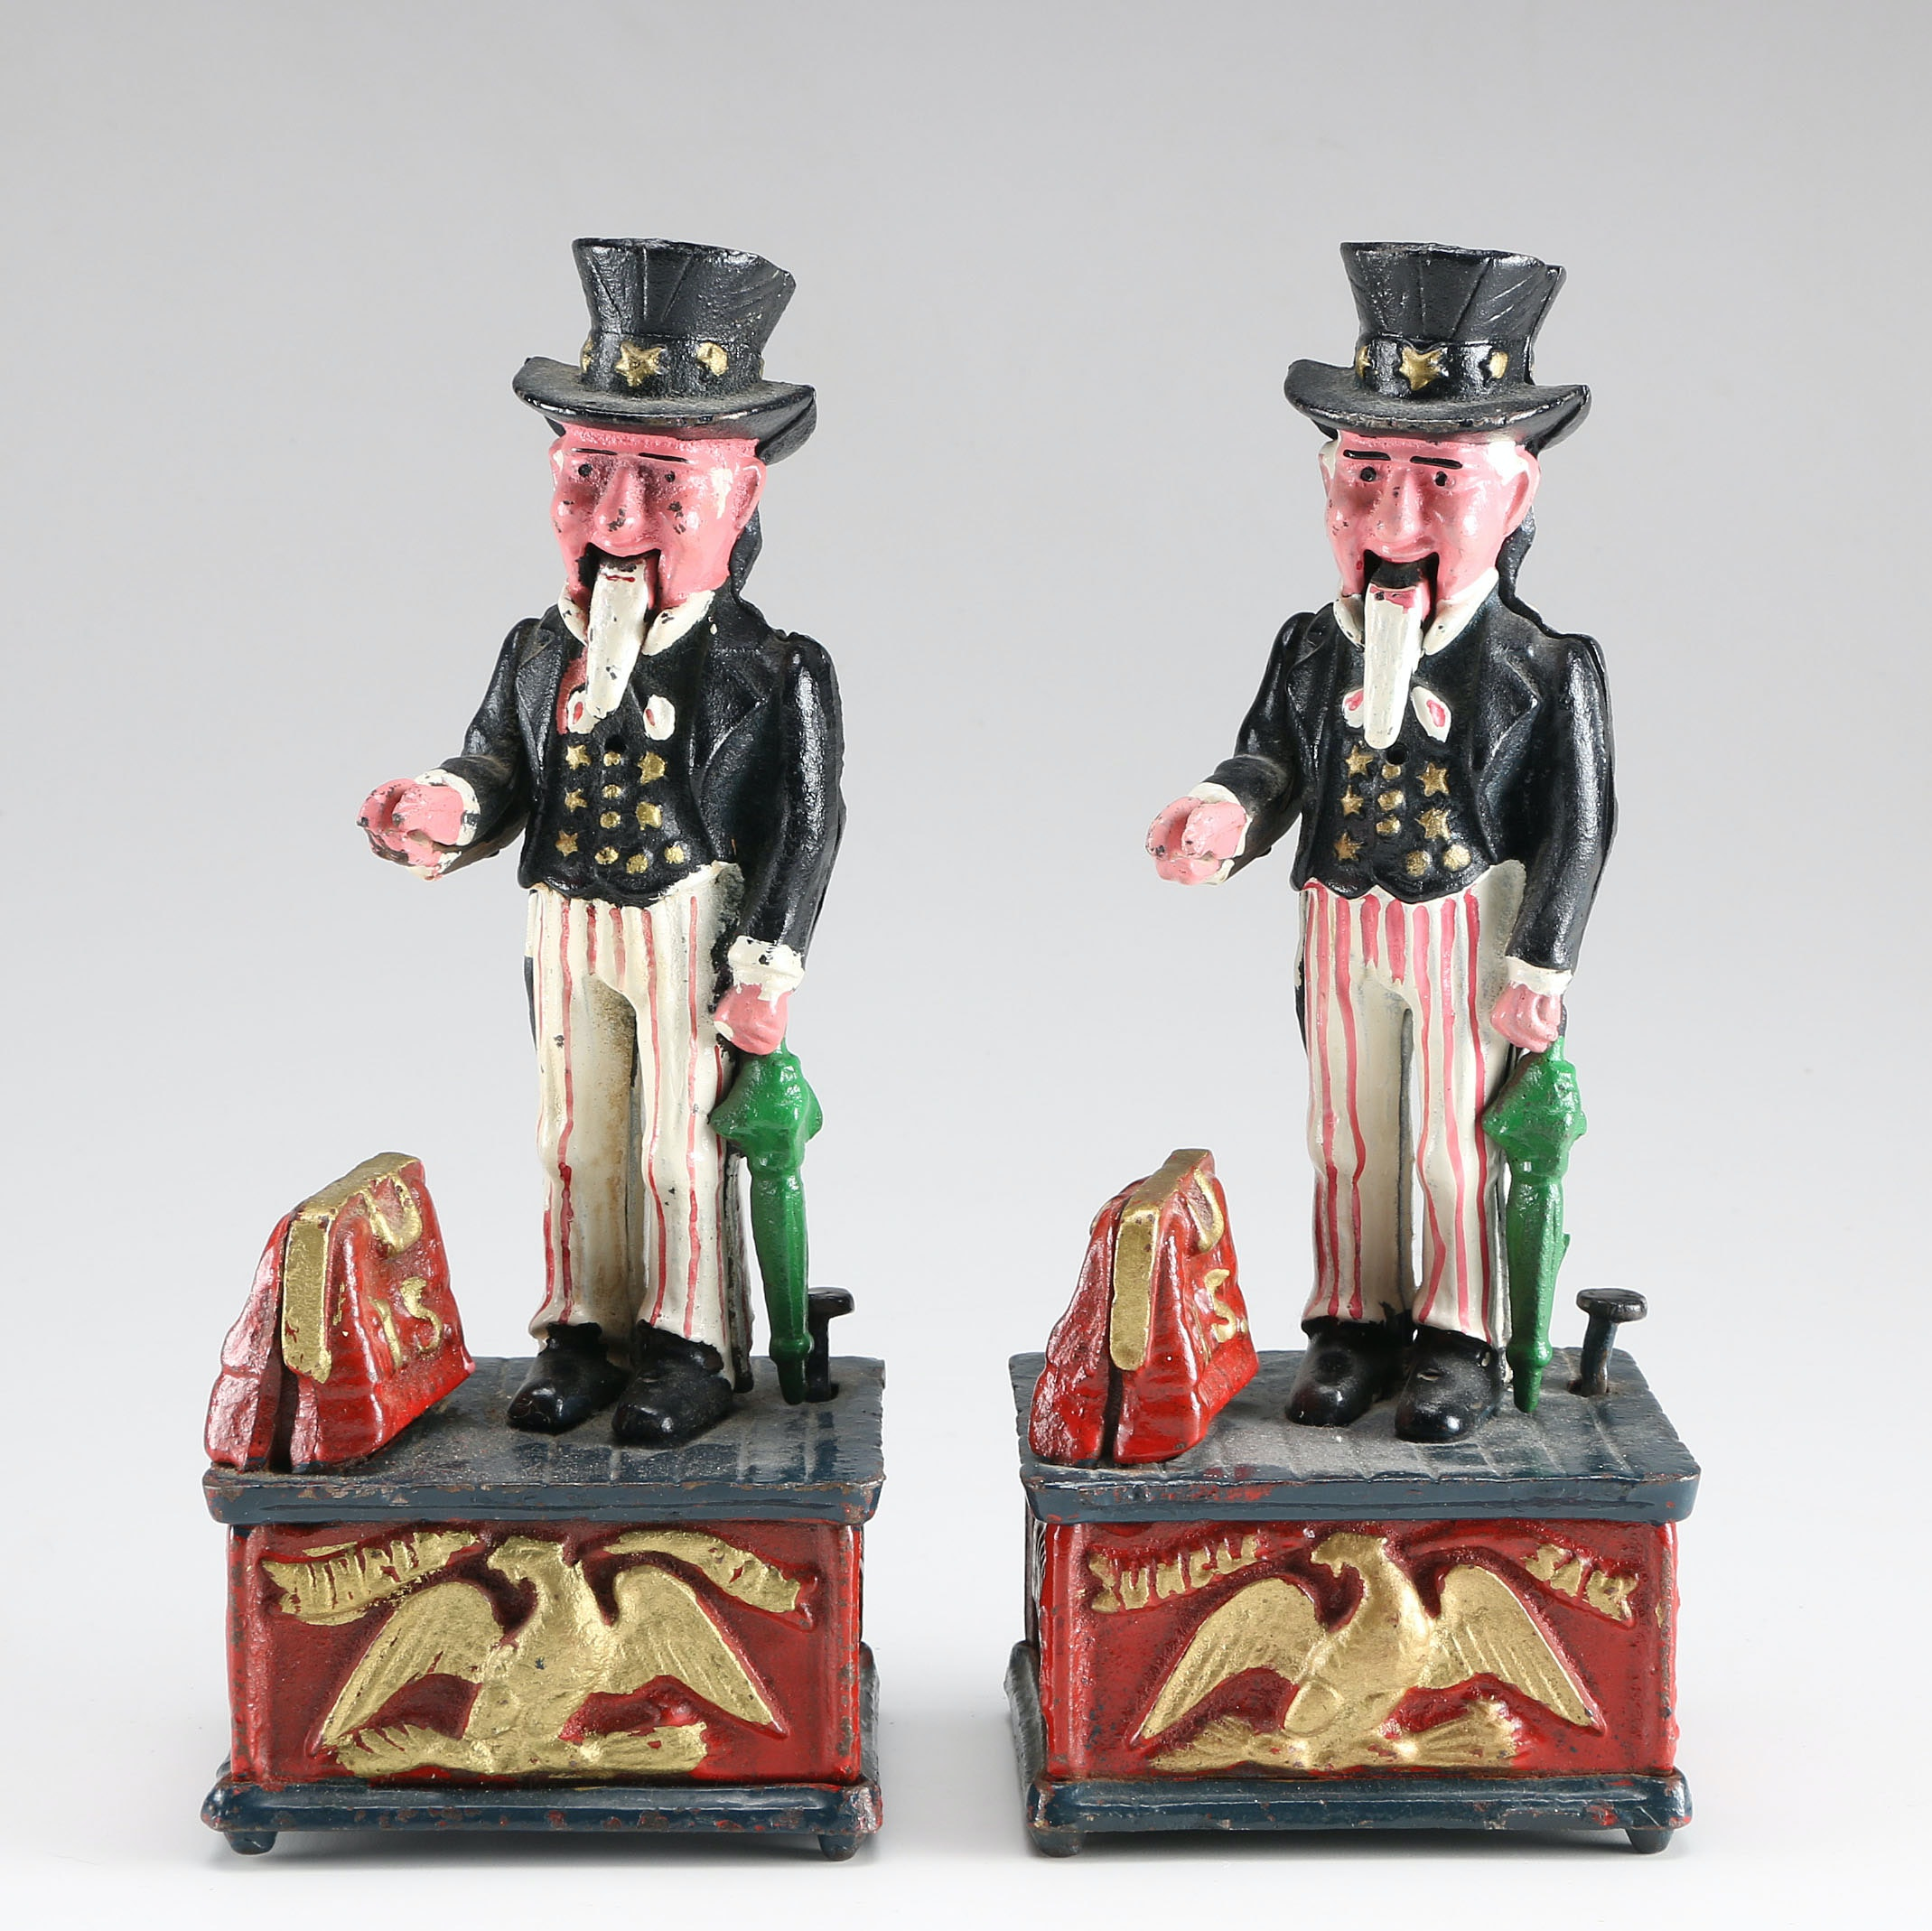 Pair of Vintage Cast Iron Reproduction Uncle Sam Coin Banks